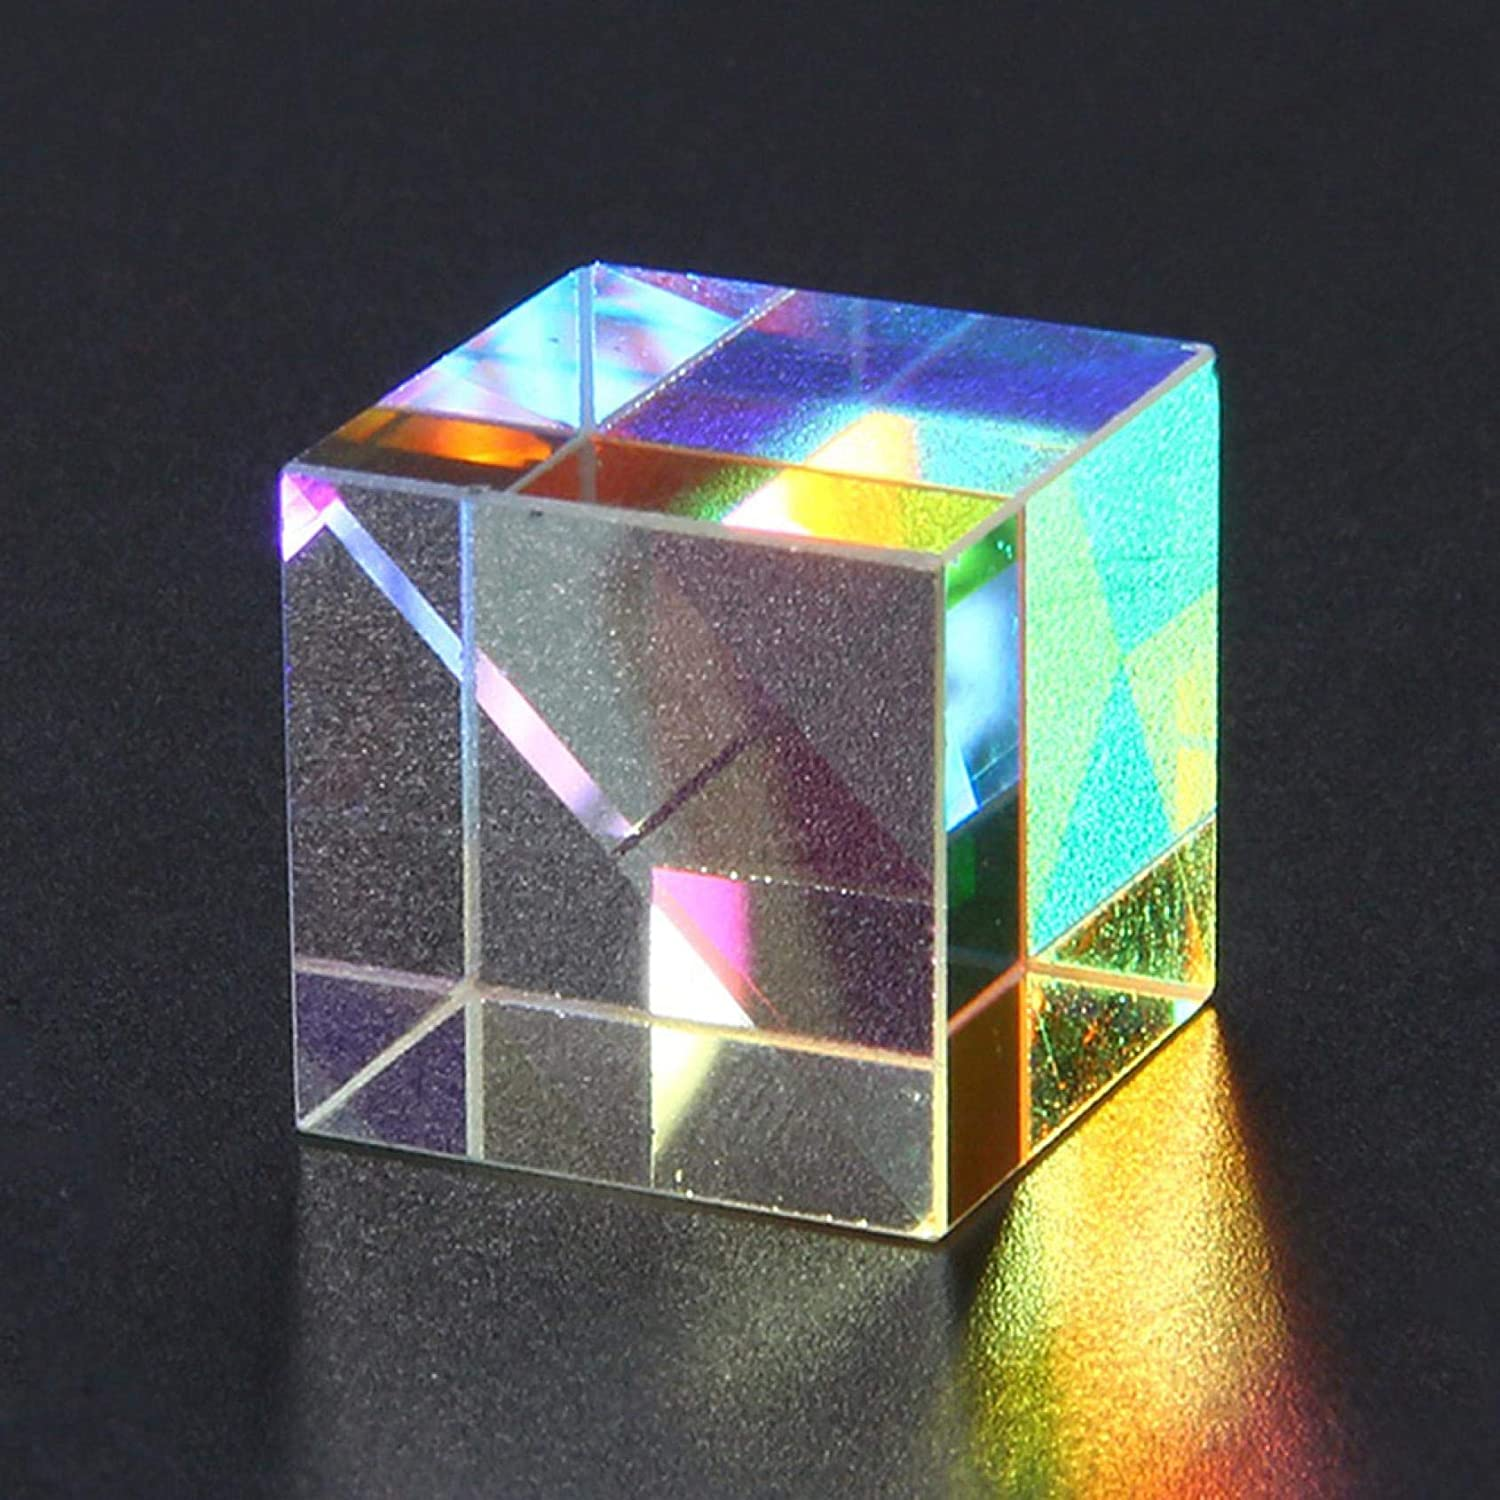 Optical Glass Prism VVIA 2PC CMY Optic Prism Cube RGB Dispersion Six-Sided Bright Light Combine Cube for Physic,Puzzle Cube For Kids Boys Toddler A